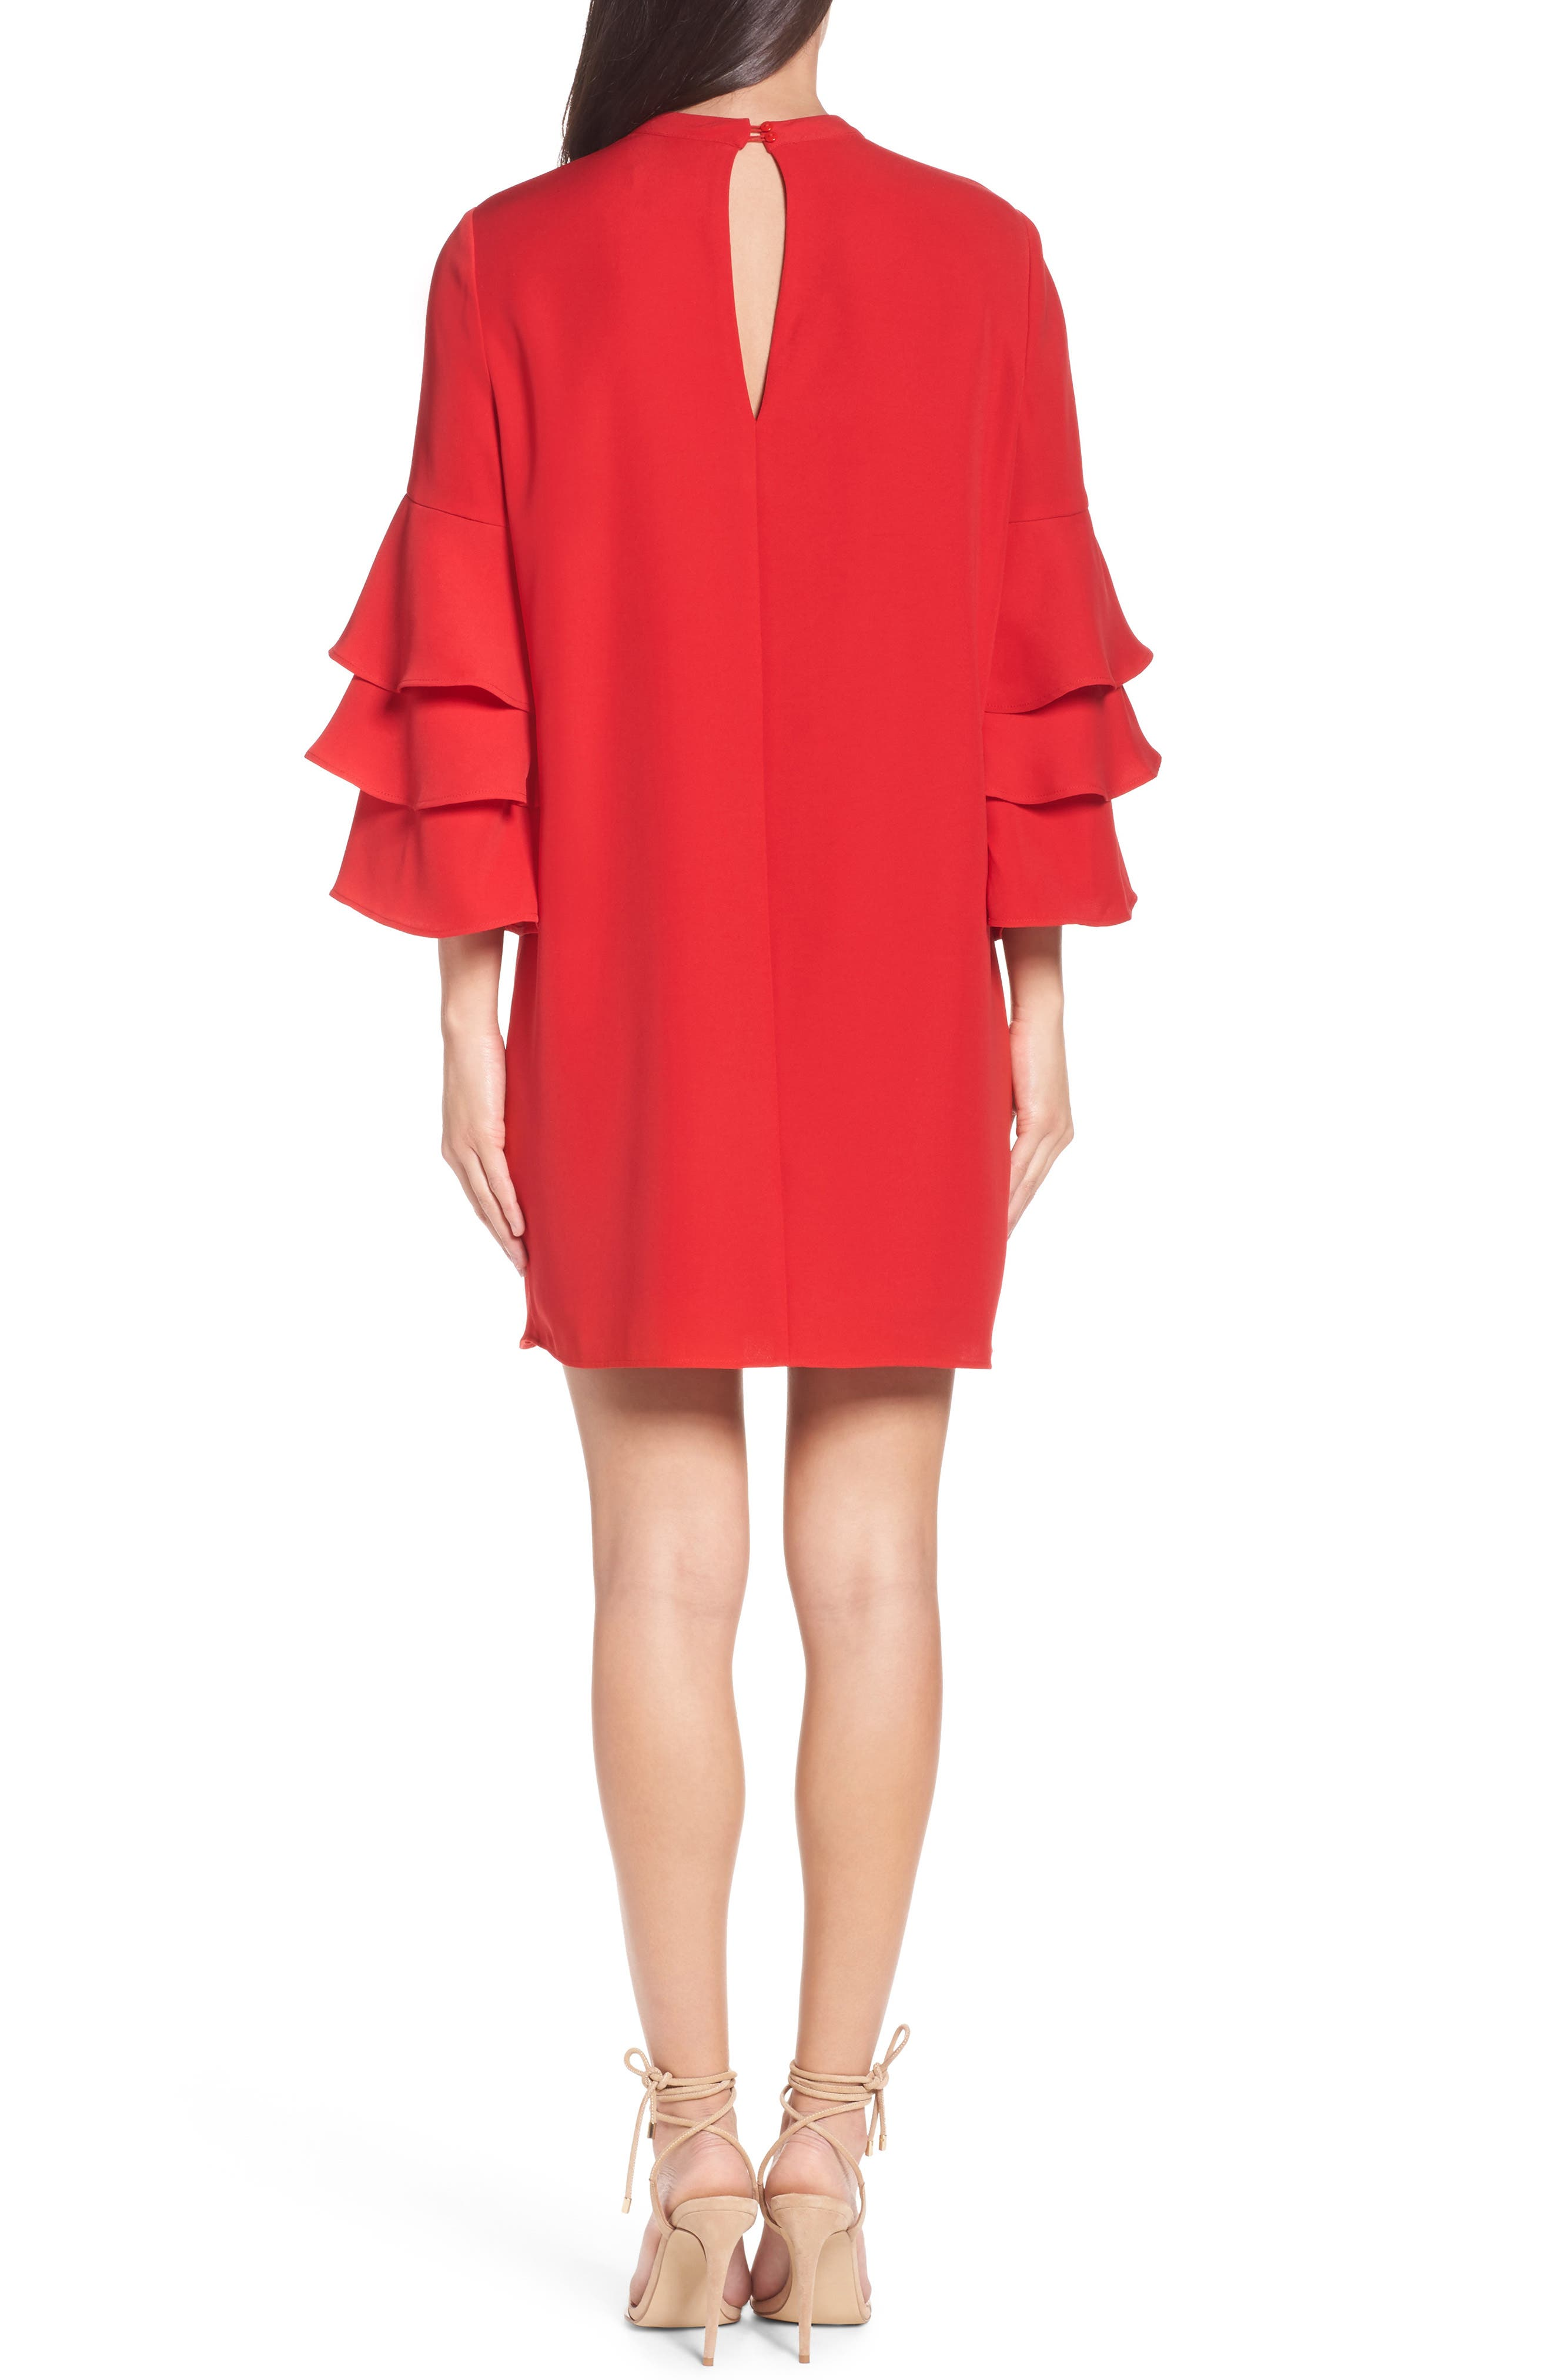 Ruffle Sleeve Shift Dress,                             Alternate thumbnail 2, color,                             Red Mars